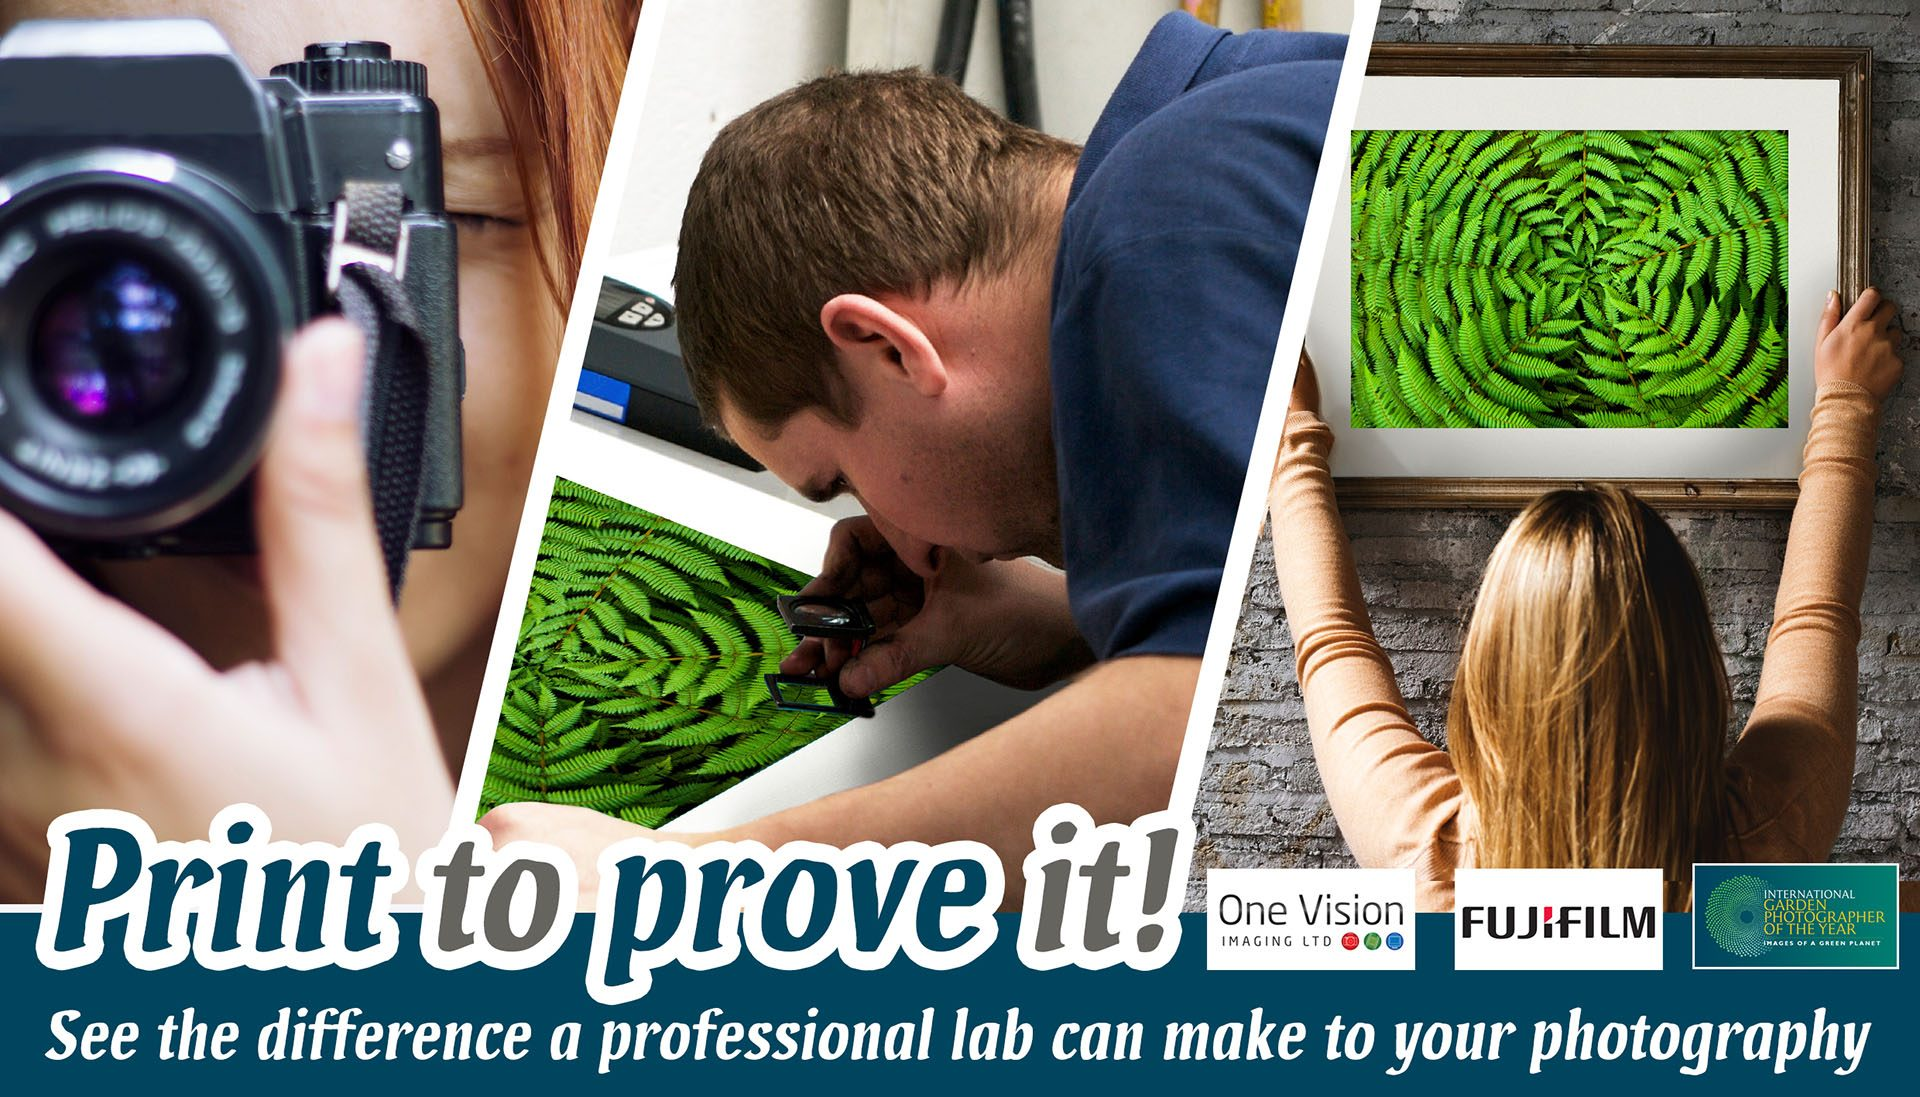 Claim your free pro lab prints before April 6!